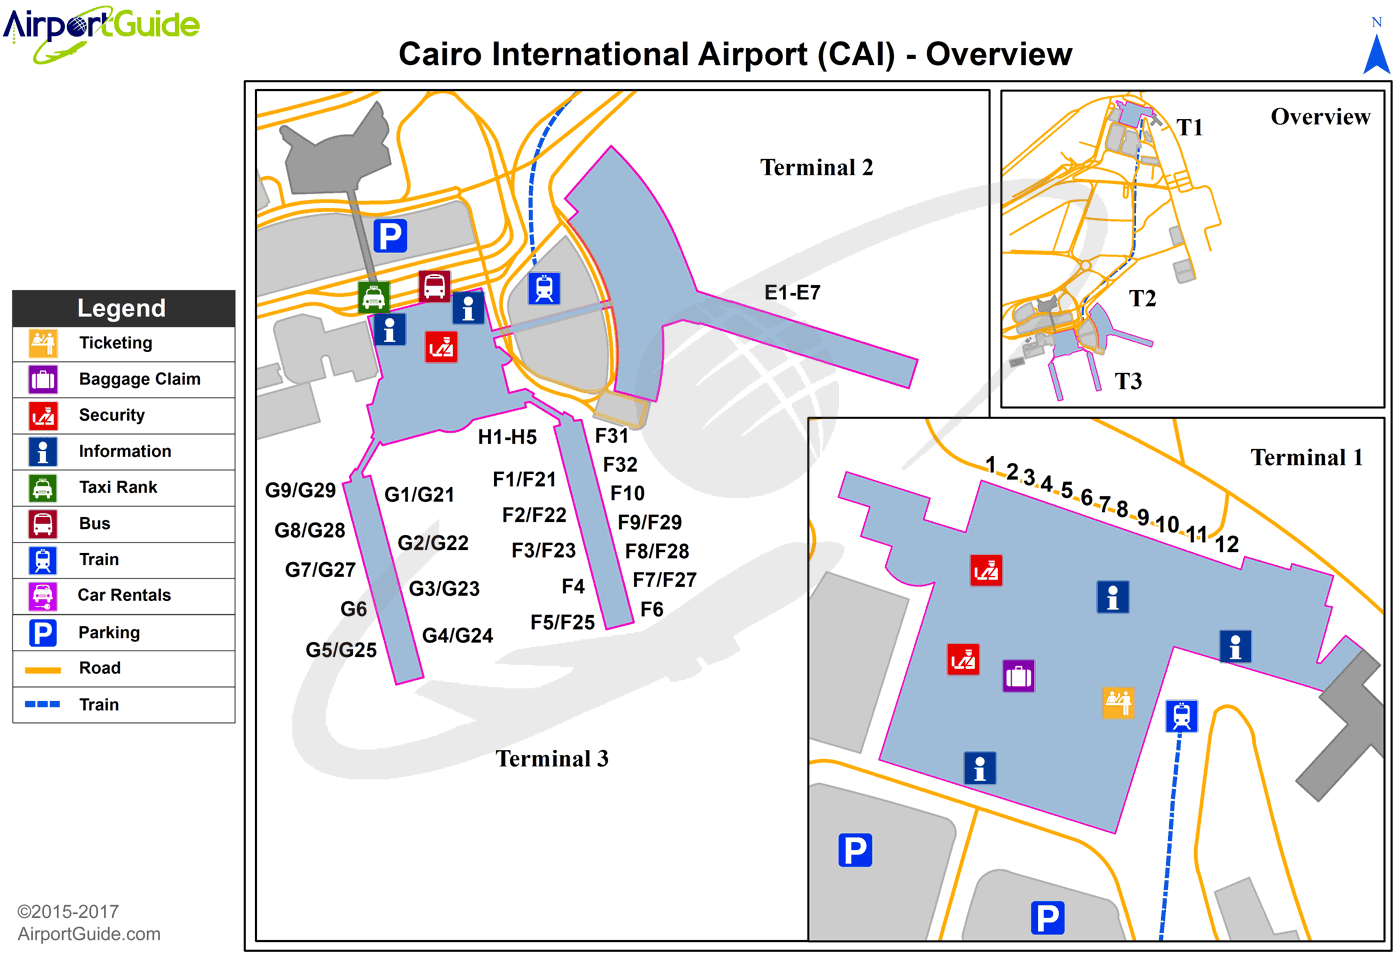 Cairo - Cairo International (CAI) Airport Terminal Map - Overview